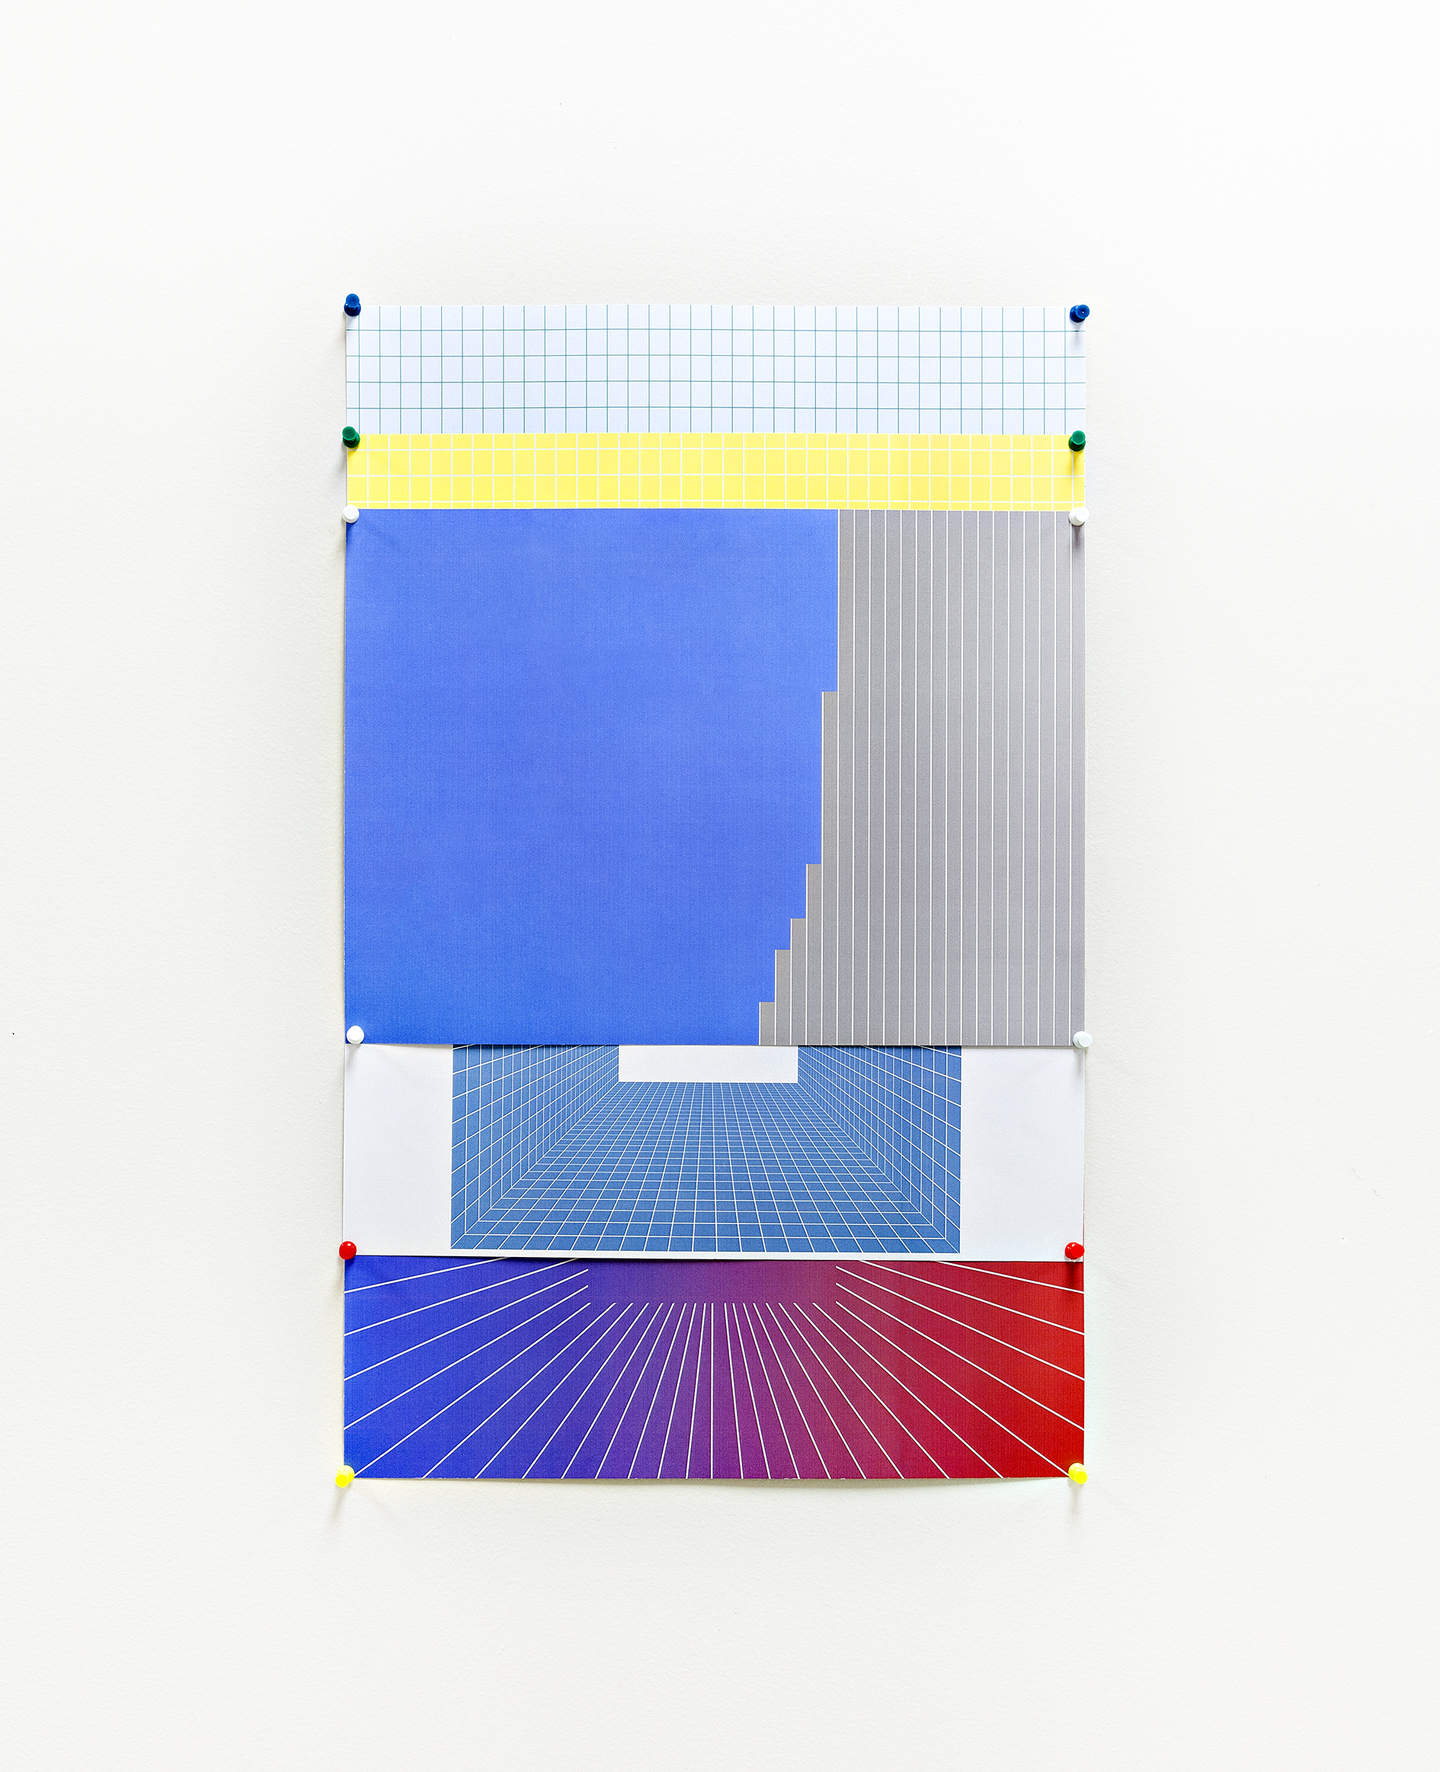 Daniel Everett, Grid III (Alternate), 2012. Courtesy: the artist